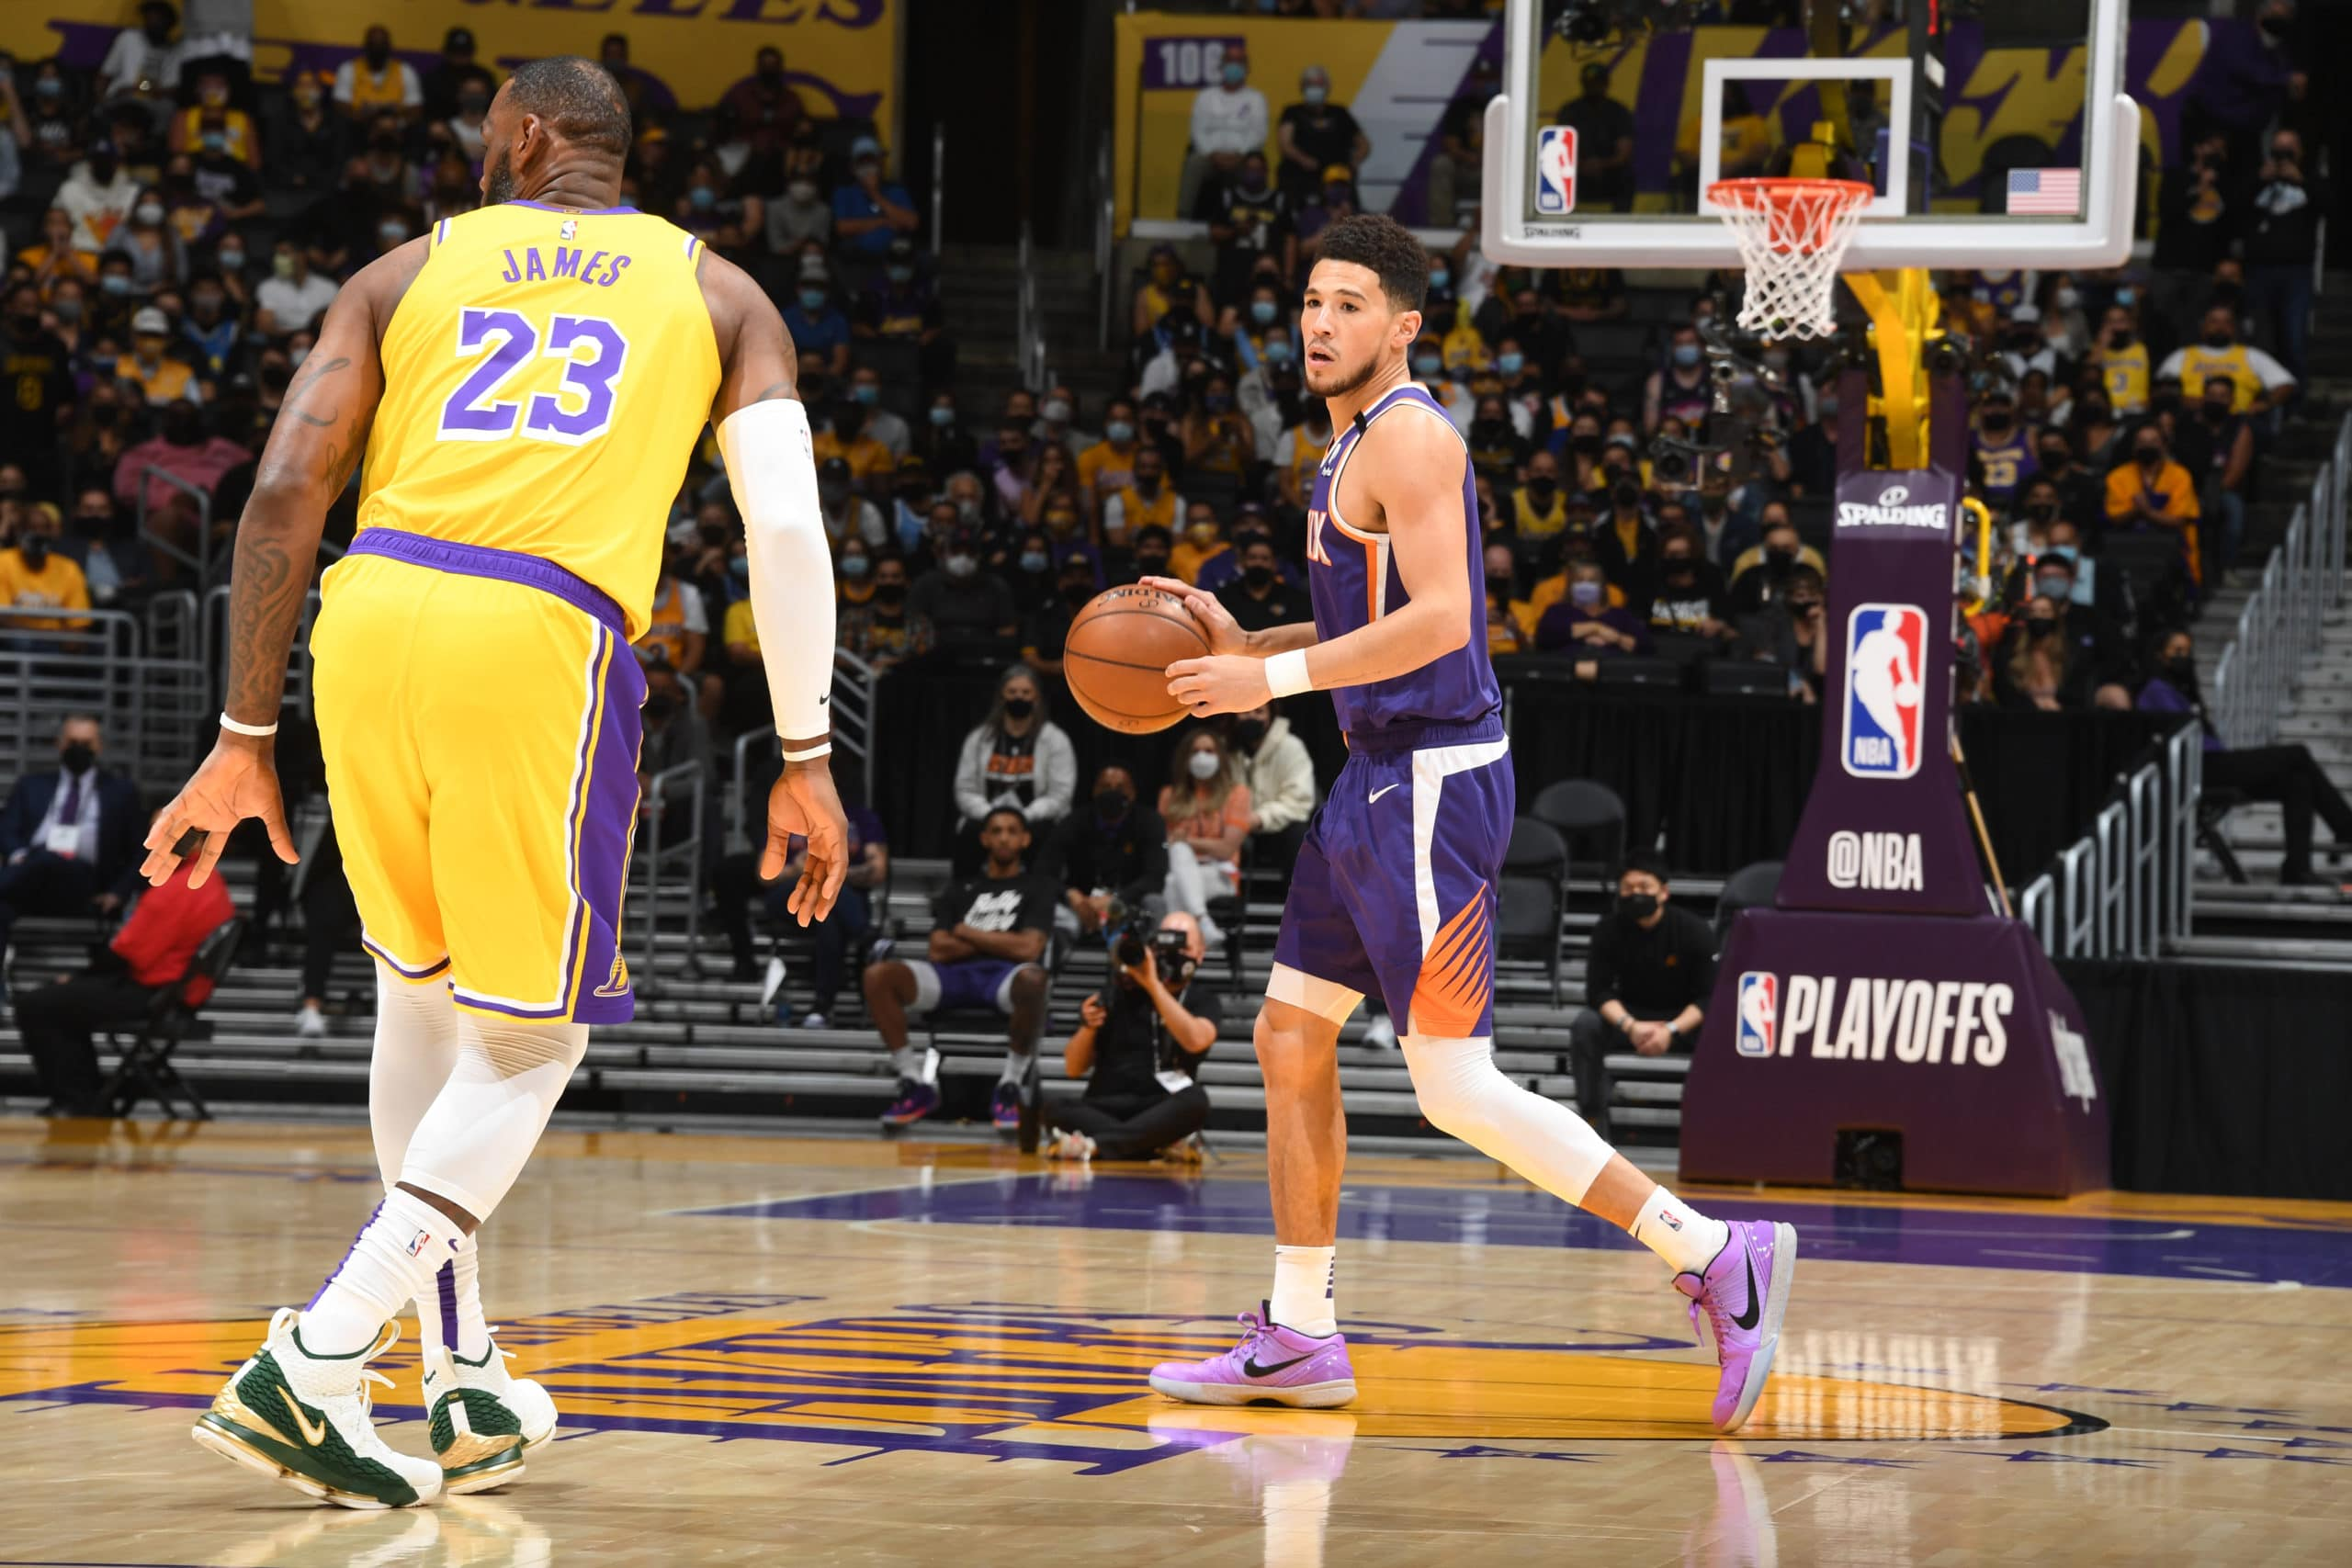 lebron-james-lakers-eliminated-by-suns-in-game-6-as-devin-booker-erupts-for-47.jpg